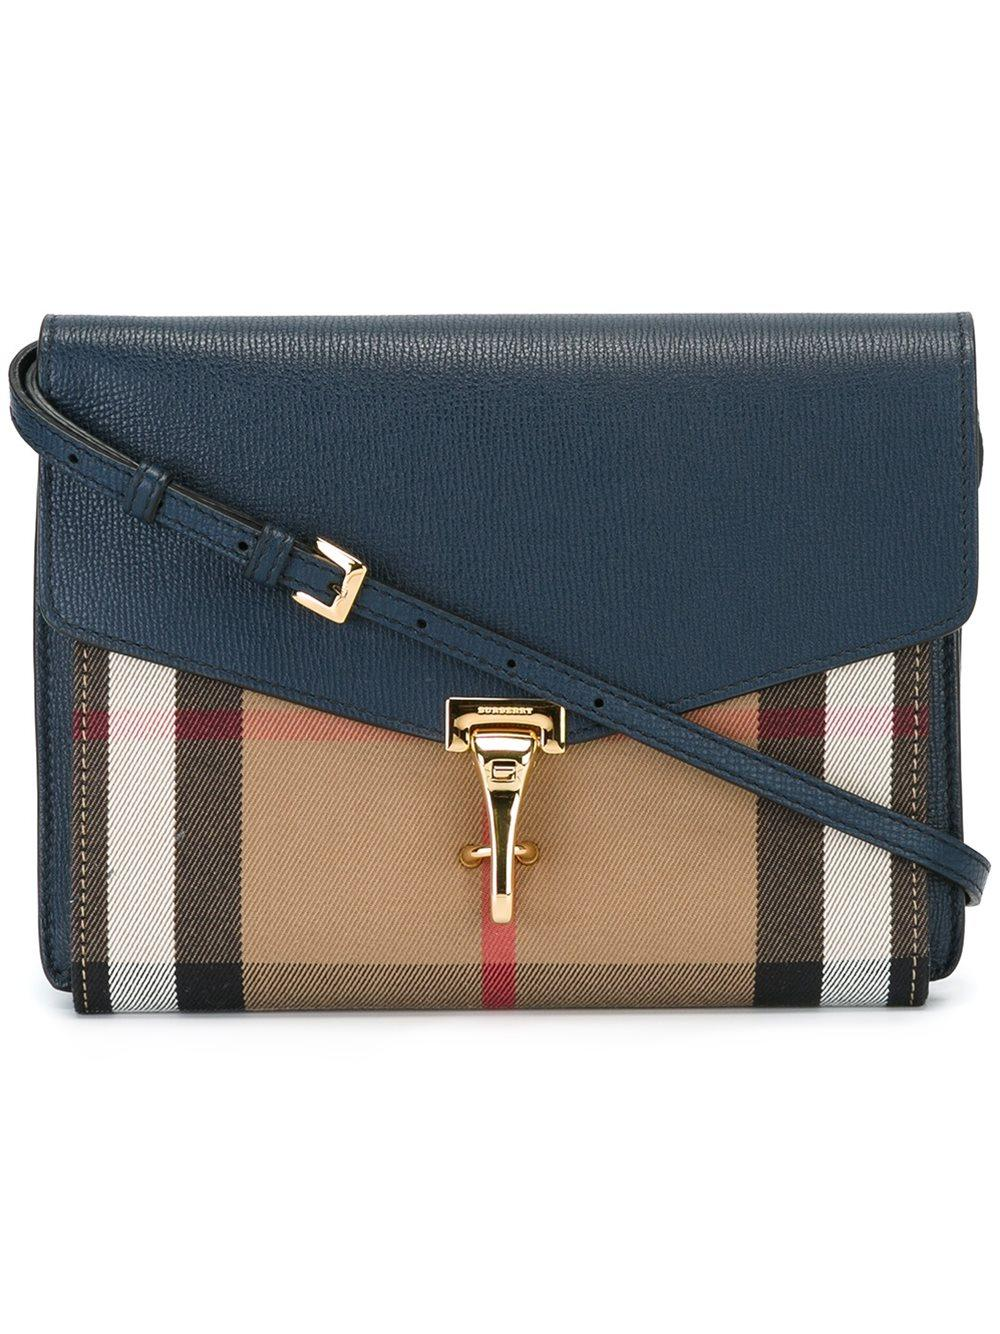 Burberry Leather Small Macken Crossbody in Blue